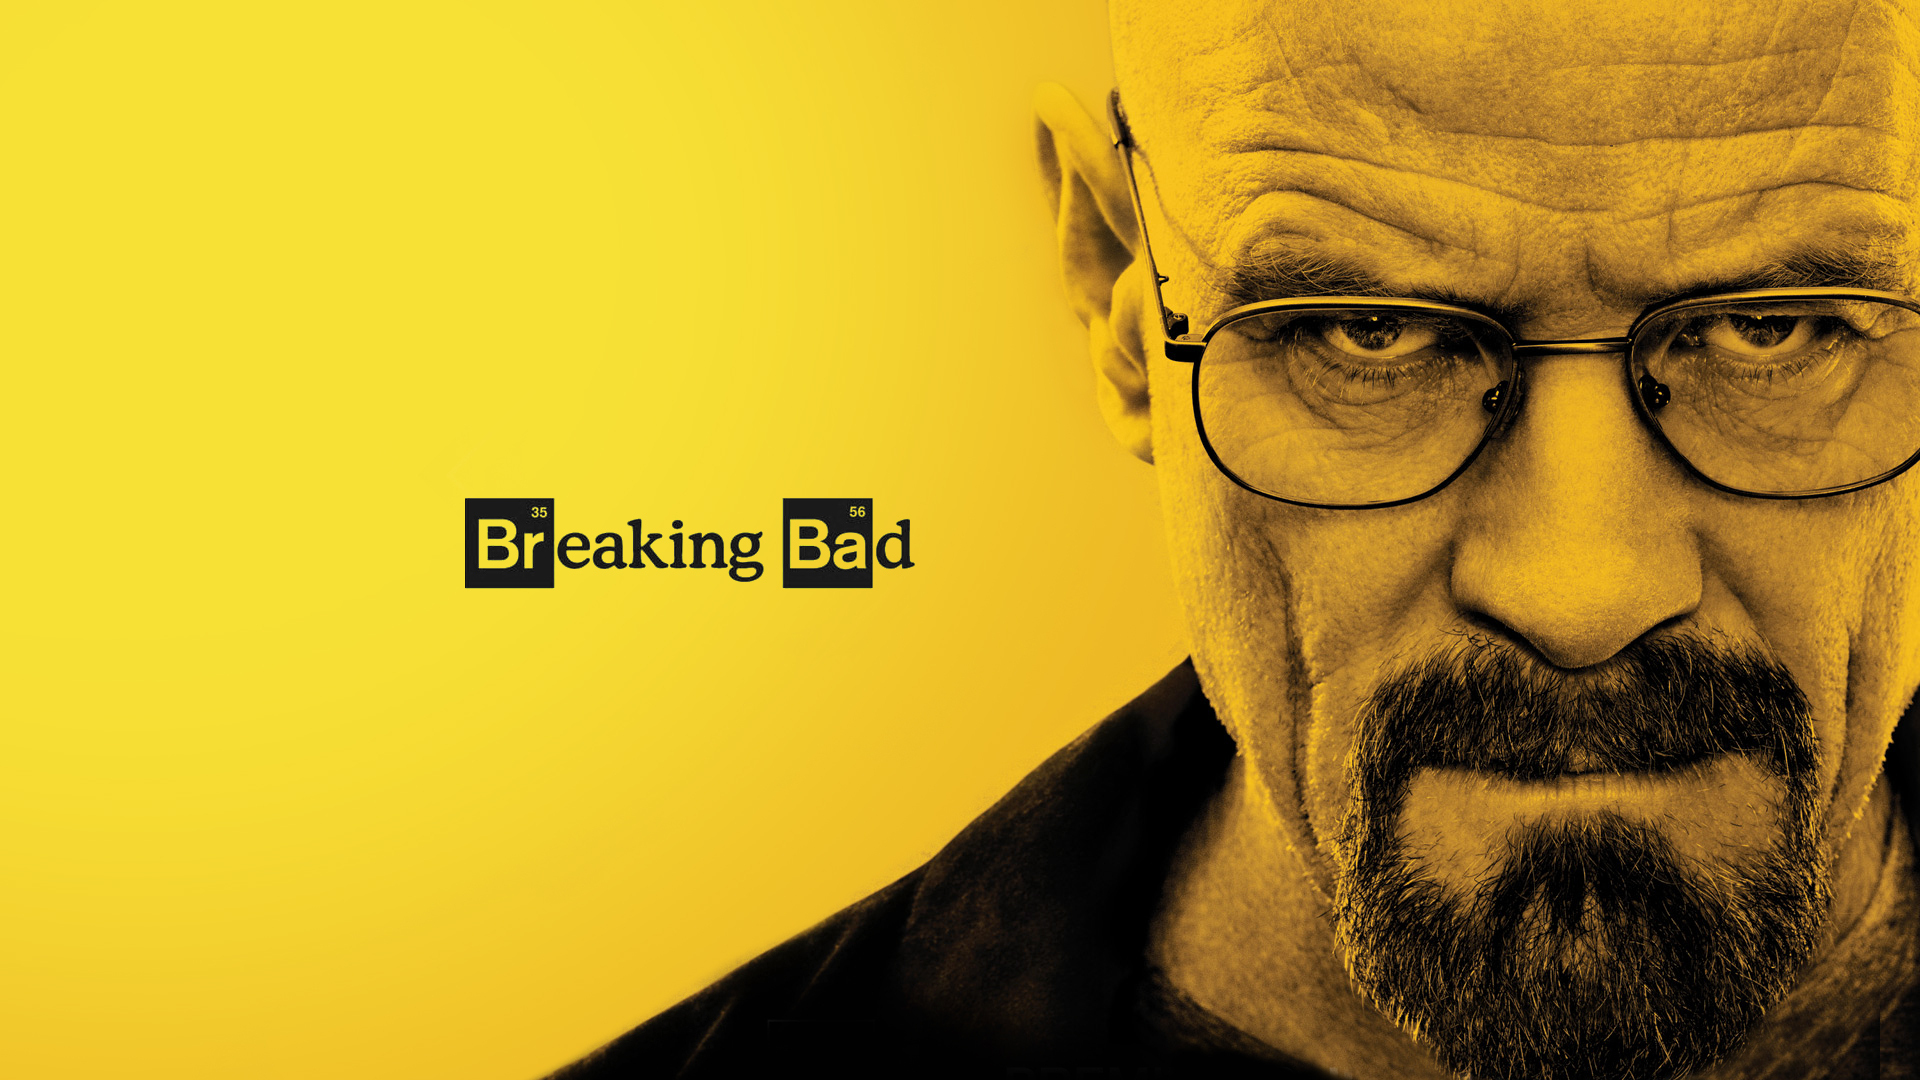 breaking, bad, во, все, тяжкие, сериал, химия, ба